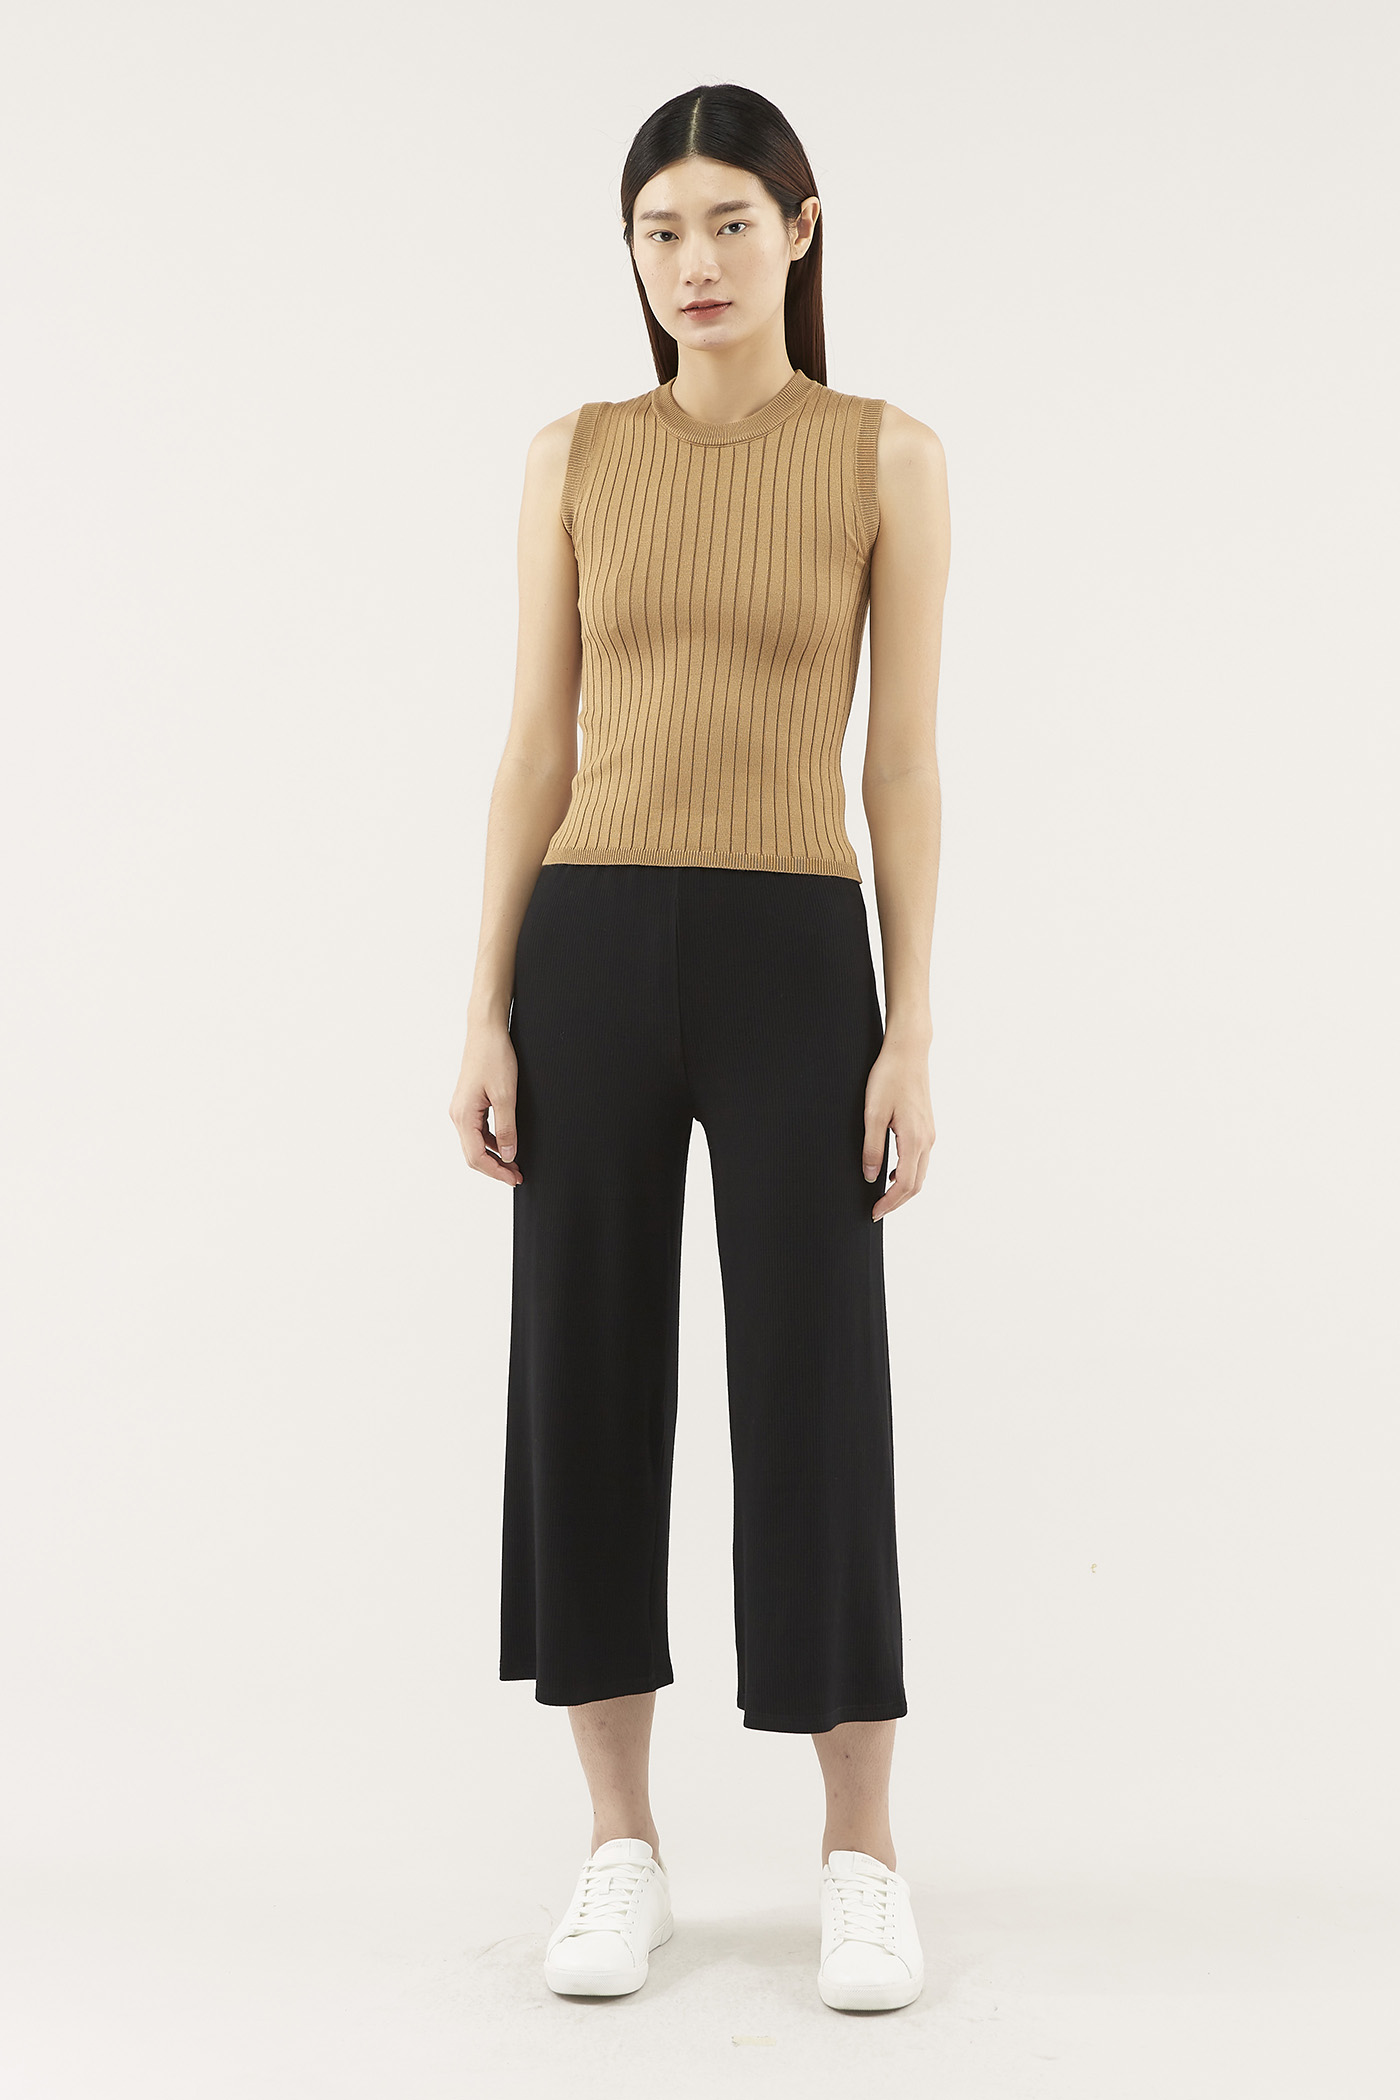 Givon Ribbed Knit Top